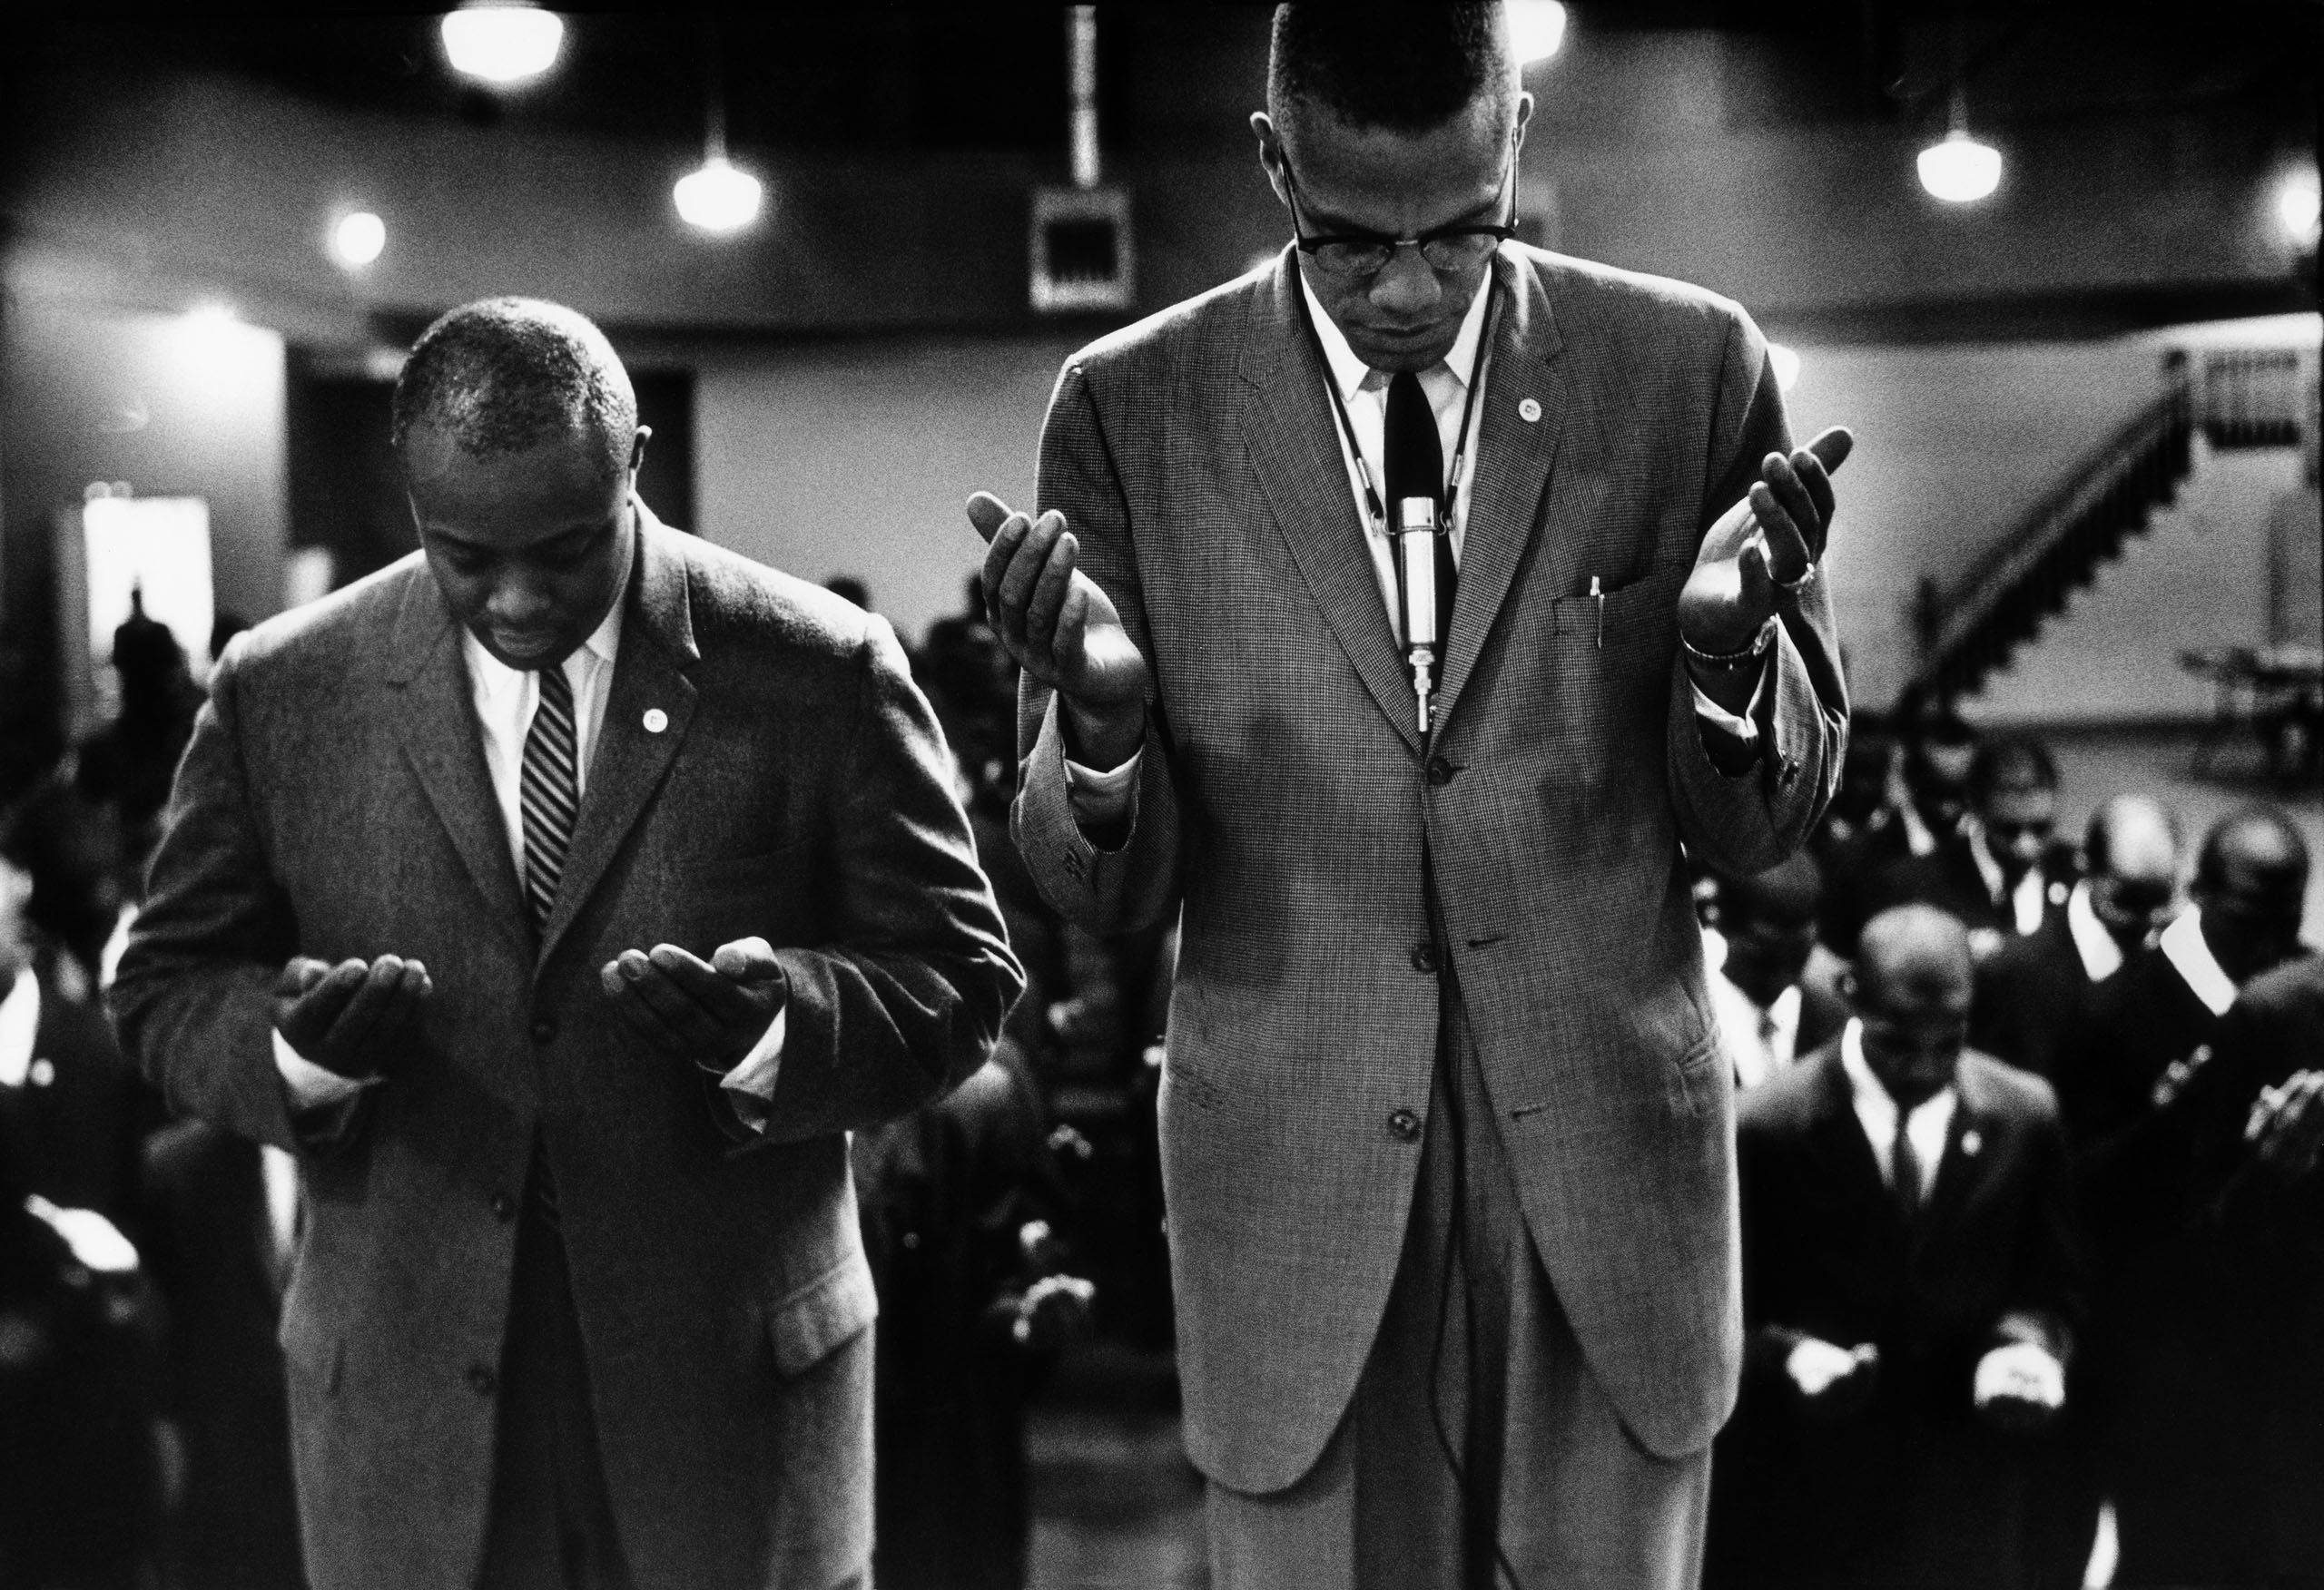 Malcolm X Leads Muslims in Prayer, Chicago, 1963, from Black Muslims.